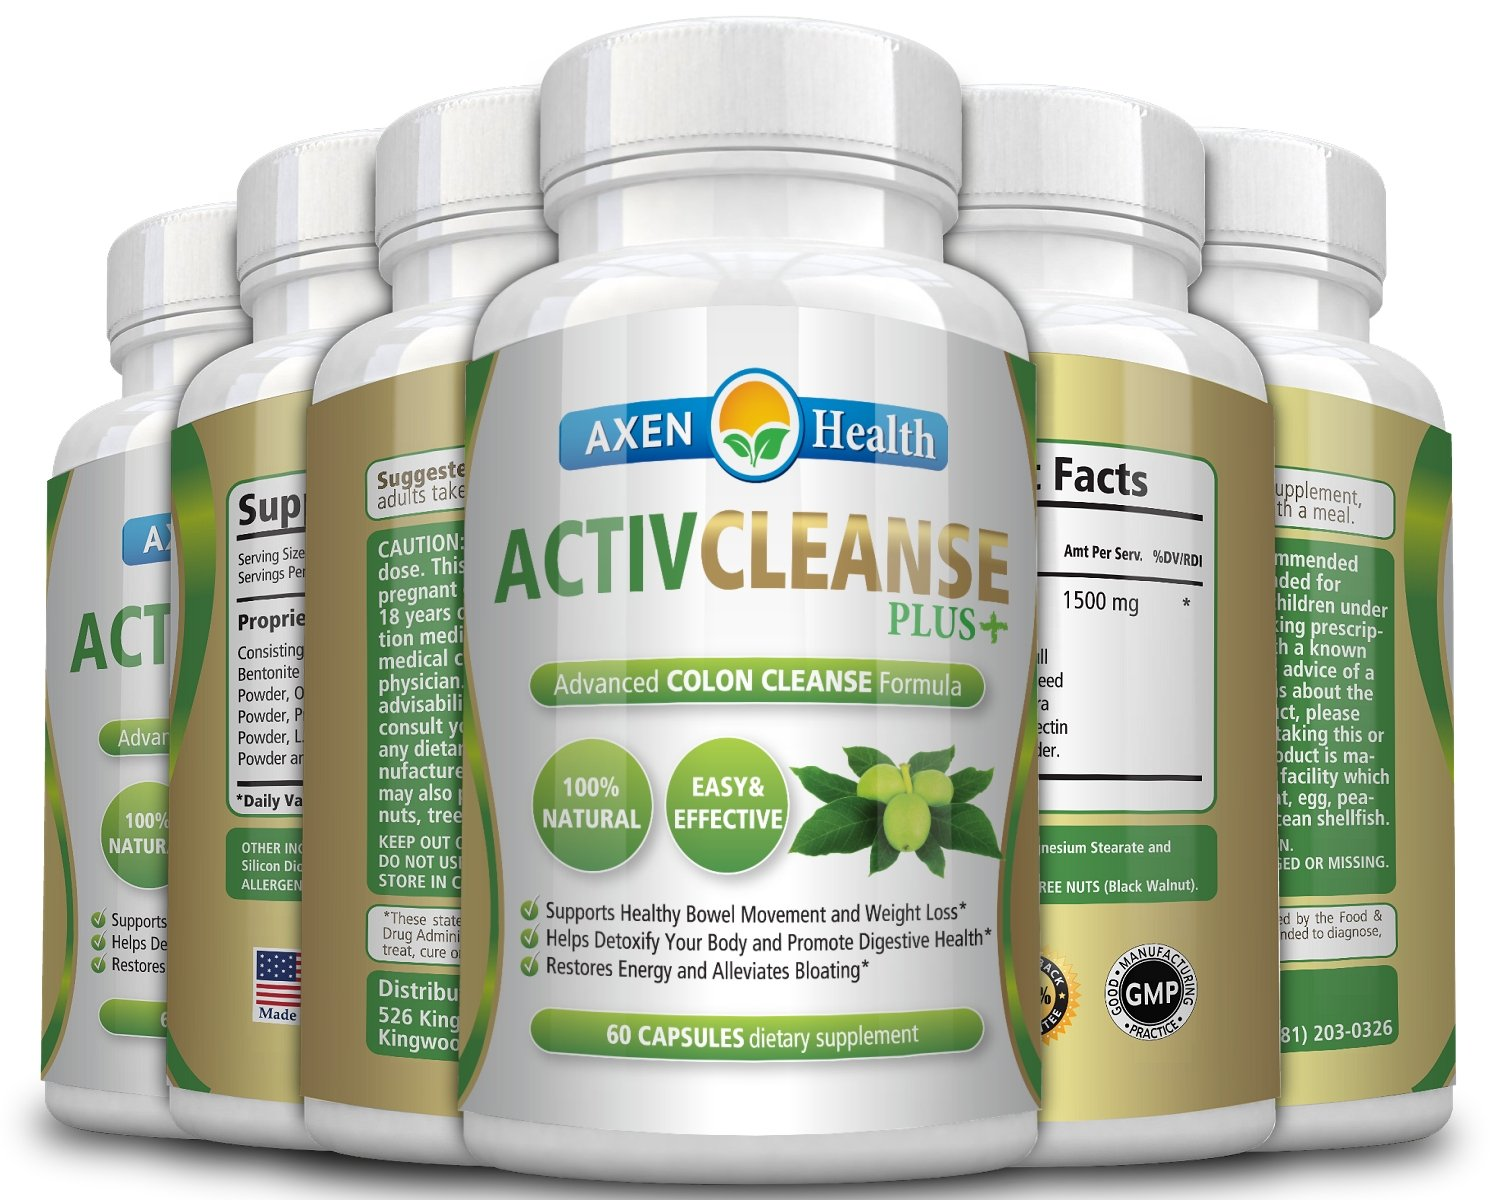 ActivCleanse Plus Advanced Colon Cleanse Formula (60 Capsules) - Lose Weight, Boost your Energy Levels, Improve Overall Digestive & Immune Health, and Just Feel Better Fast - (6 Pack)